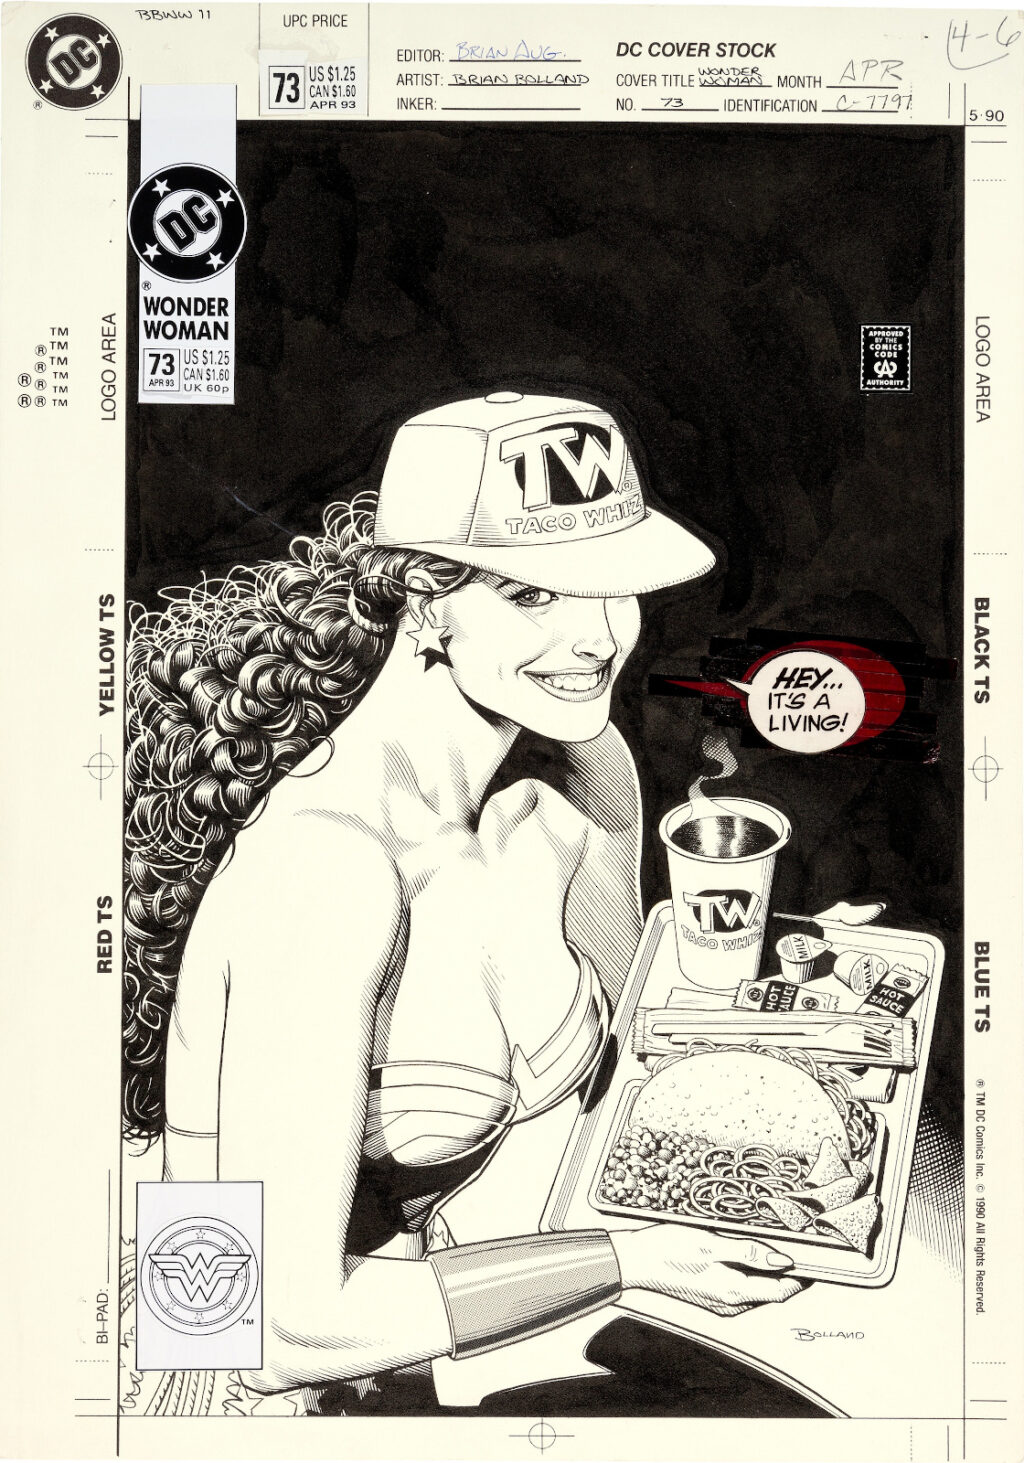 Wonder Woman issue 73 cover by Brian Bolland